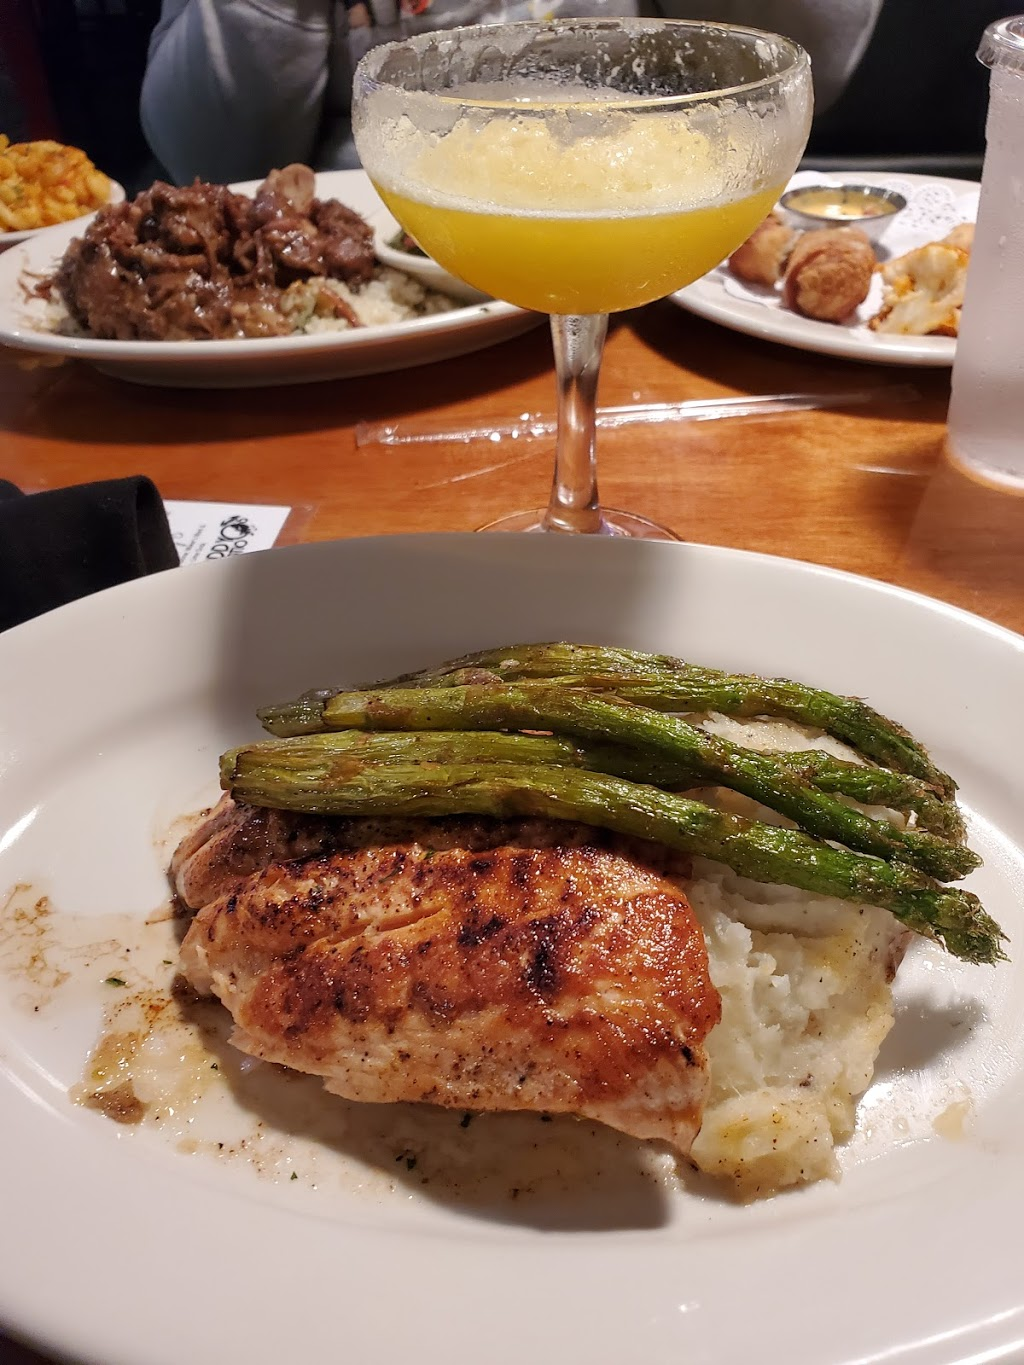 Daddy Os Patio Fine Dining Restaurant   restaurant   1822 E 7th Ave, Tampa, FL 33605, USA   8132420244 OR +1 813-242-0244